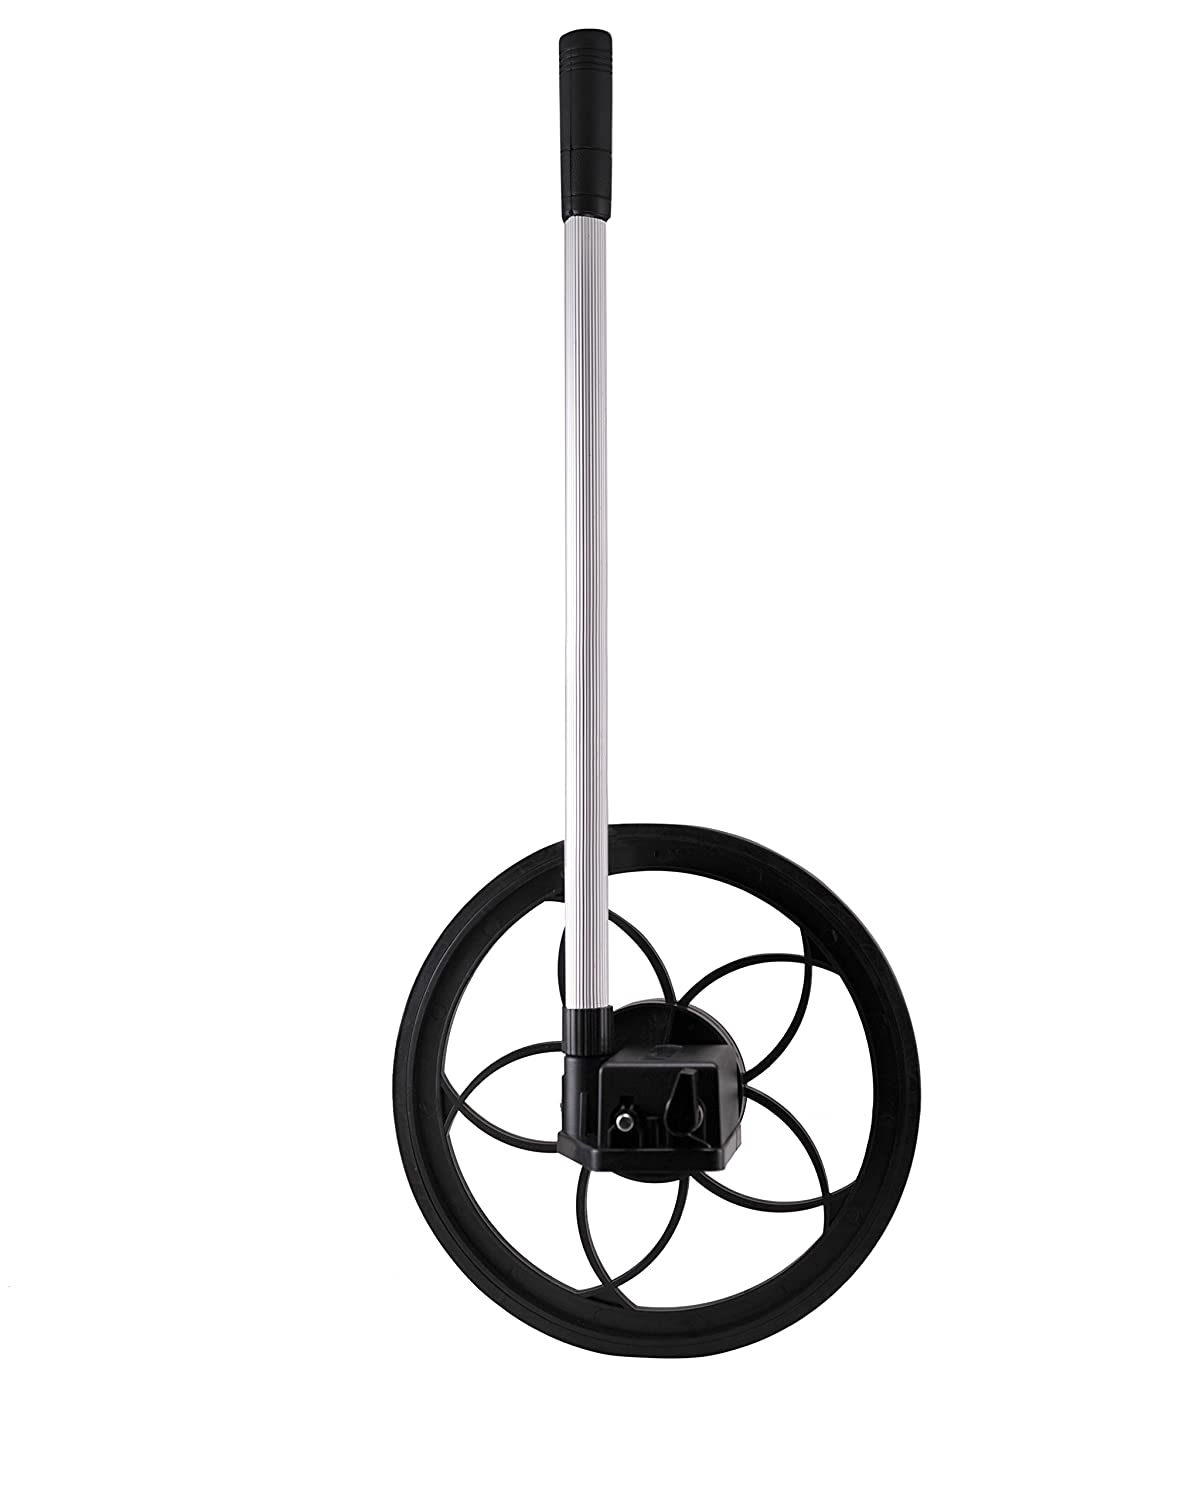 12-1//2 Neiko 01590A Rolling Measure Wheel Extendable Handle 5 Digit Display